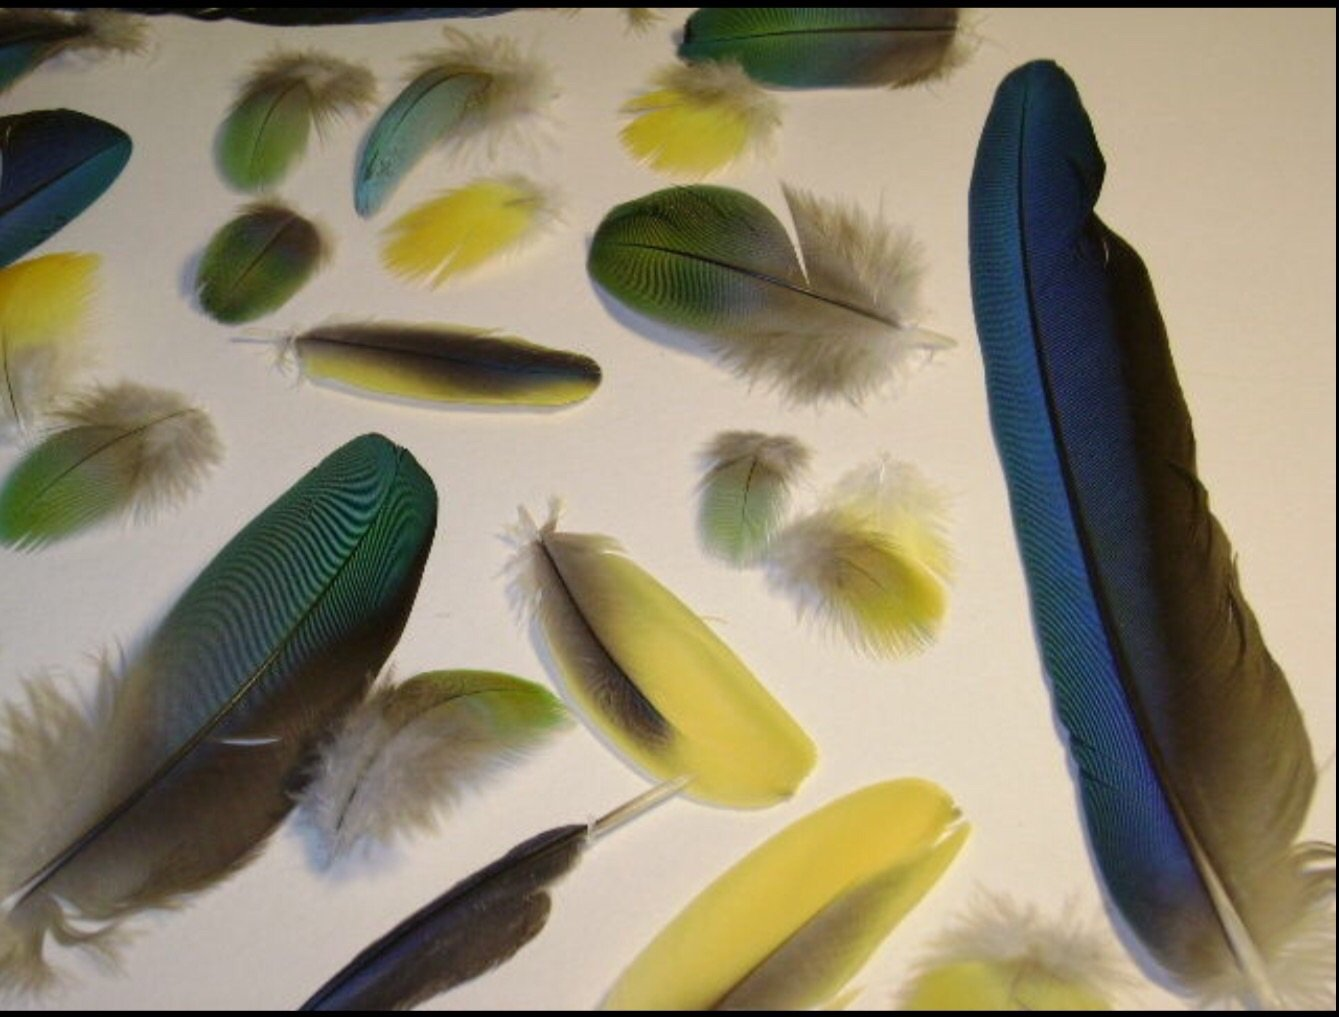 Natural macaw feathers for crafts for Natural feathers for crafts